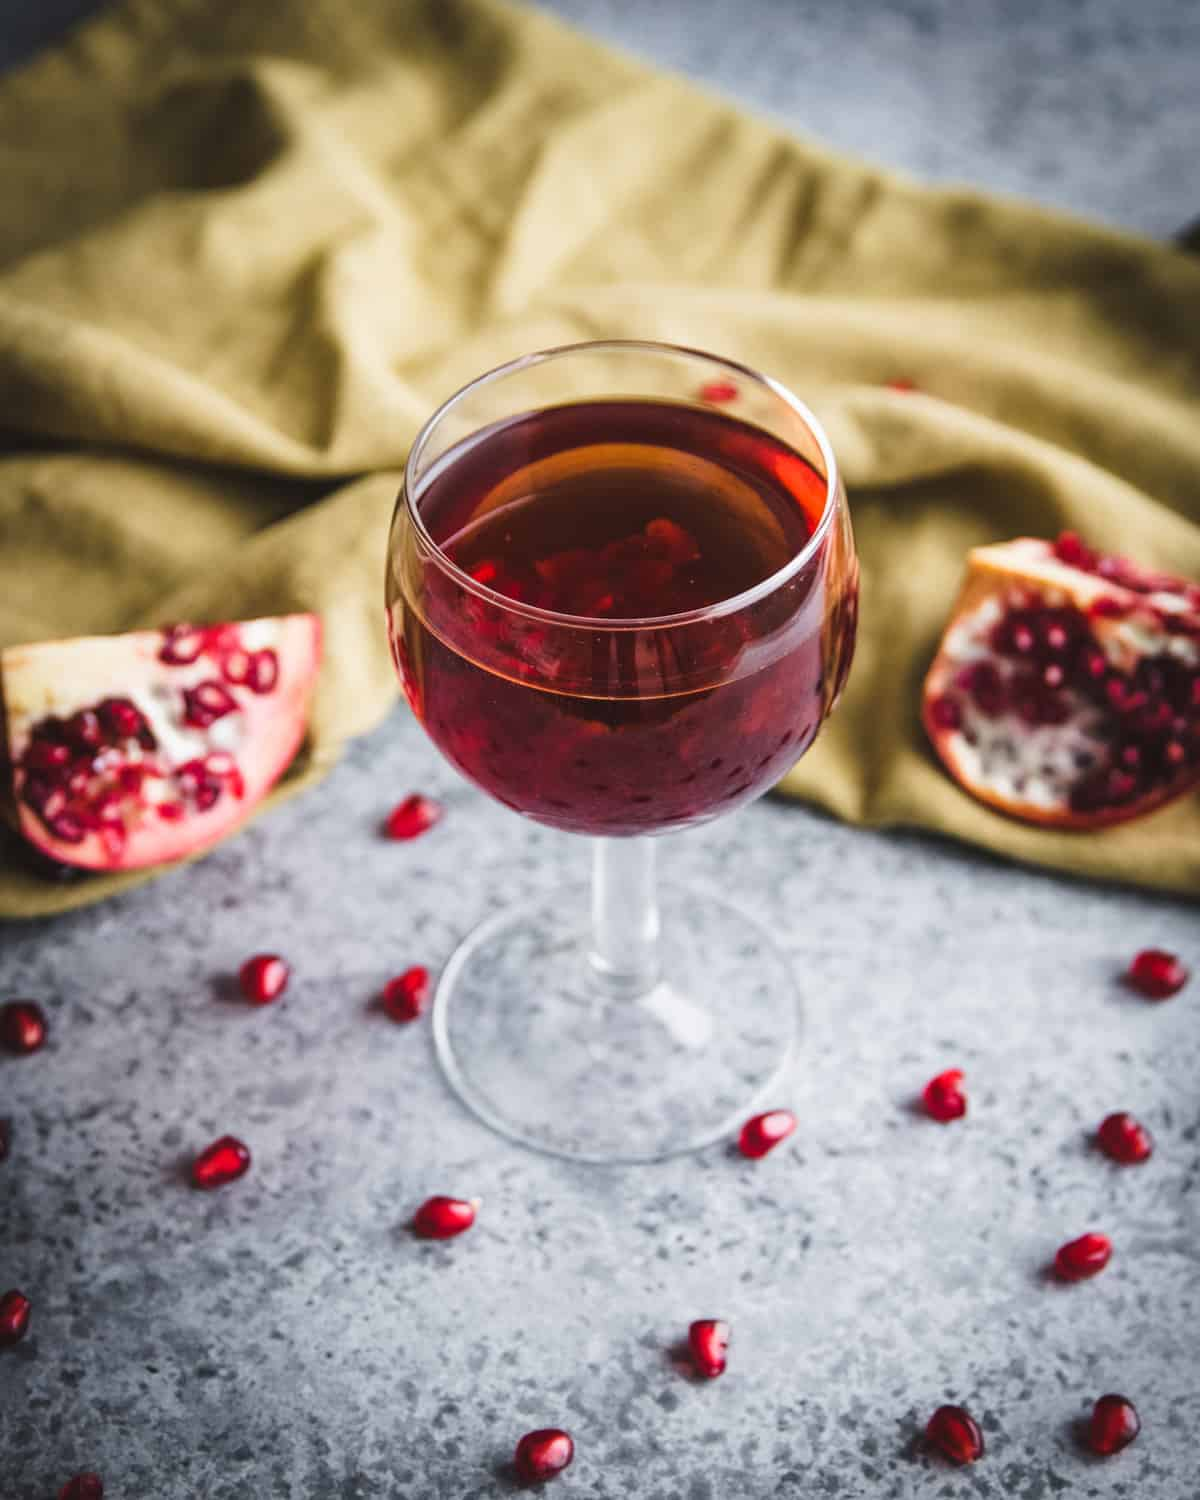 top view of a glass of red pomegranate wine